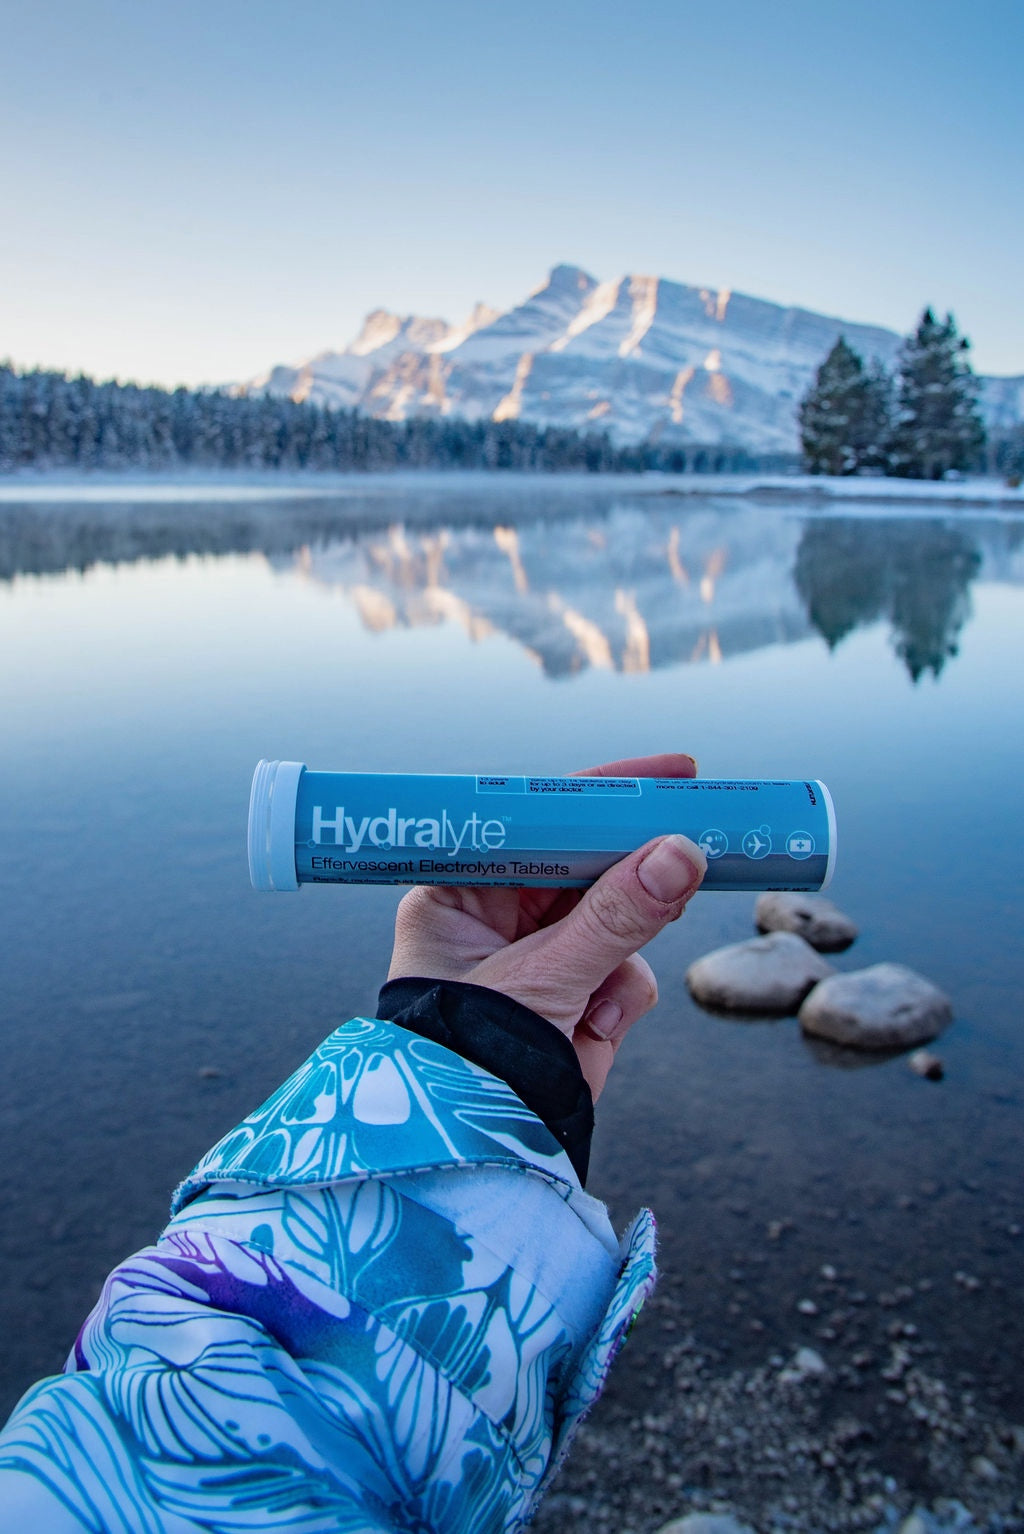 Using a rehydration supplement such as Hydralyte can help quickly replenish your fluids if experiencing winter dehydration.